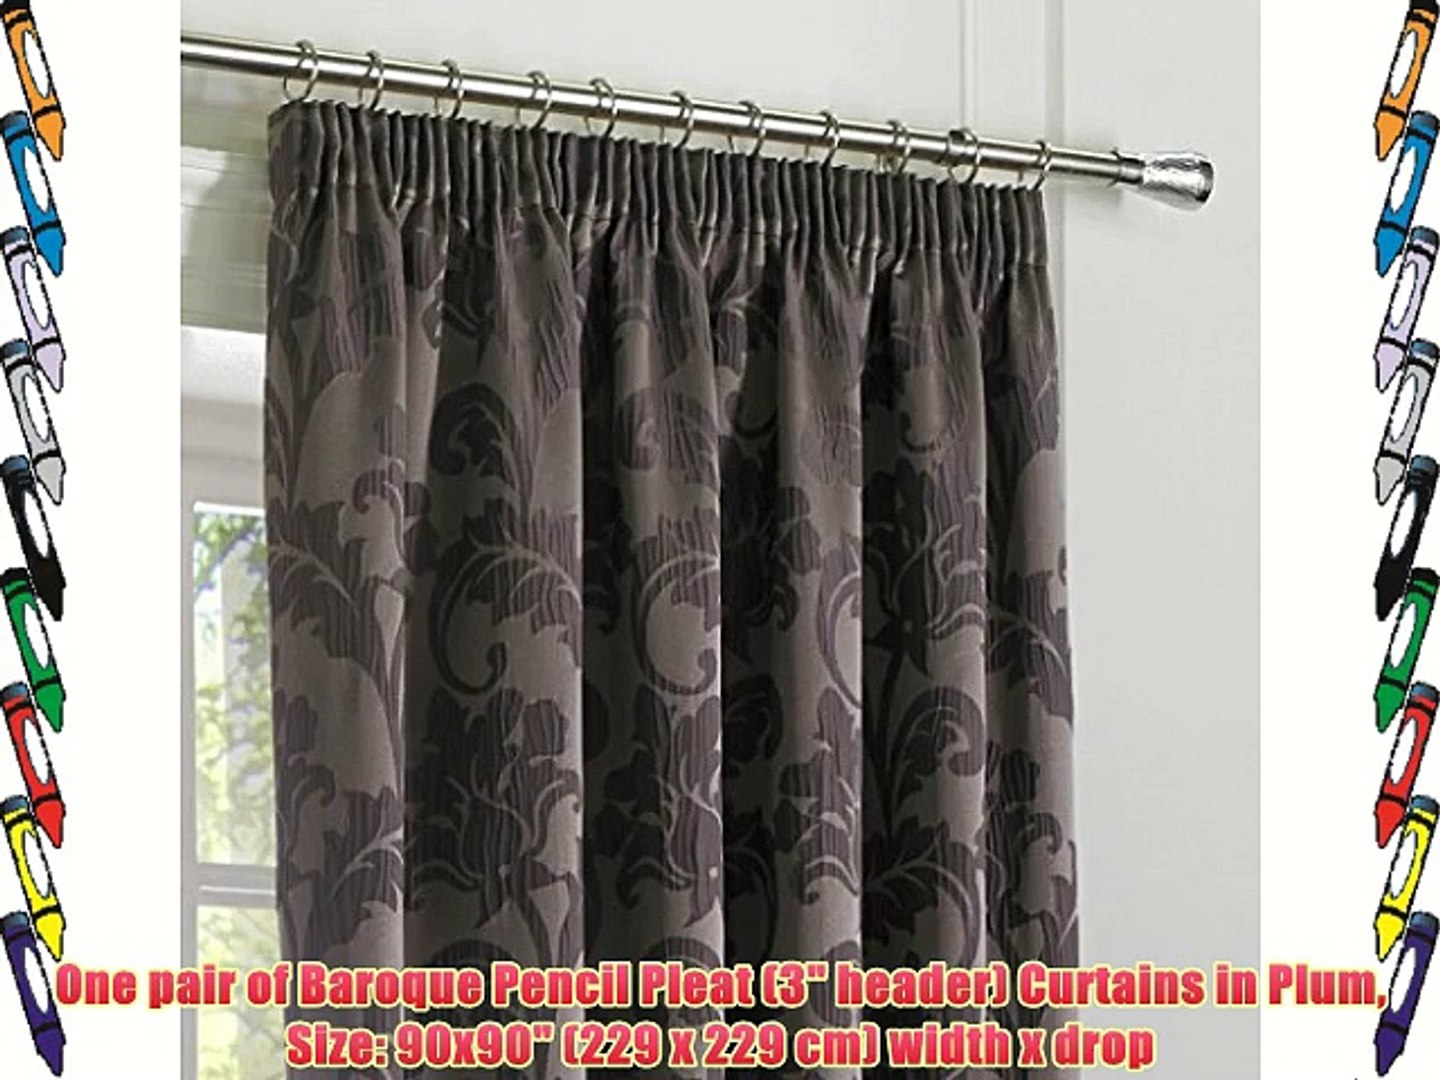 One pair of Baroque Pencil Pleat (3 header) Curtains in Plum Size: 90x90 (229 x 229 cm) width